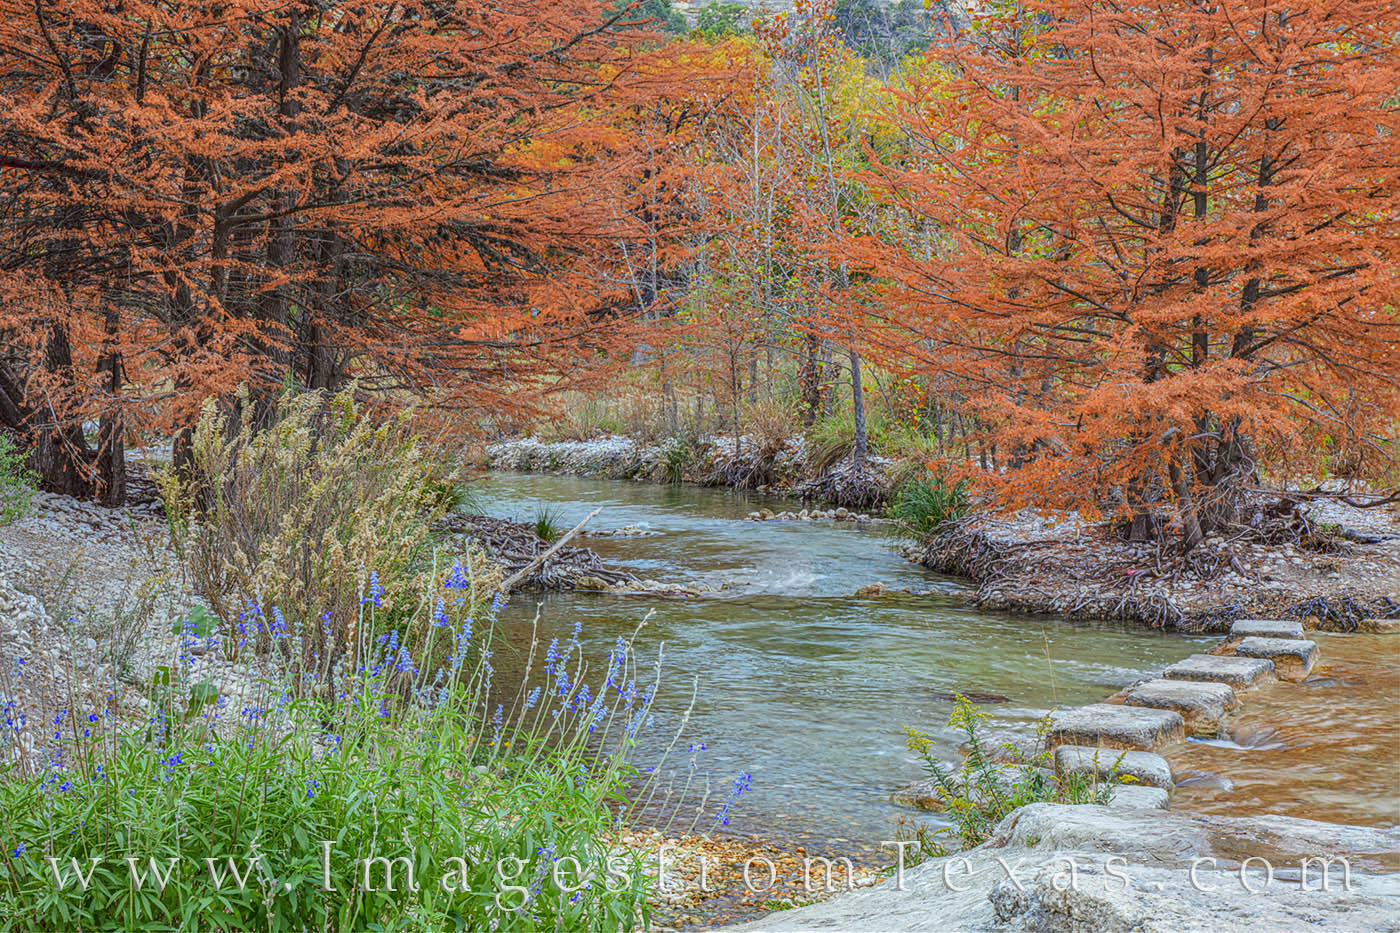 garner state park, frio river, cypress, wildflowers, fall, autumn, november, photo